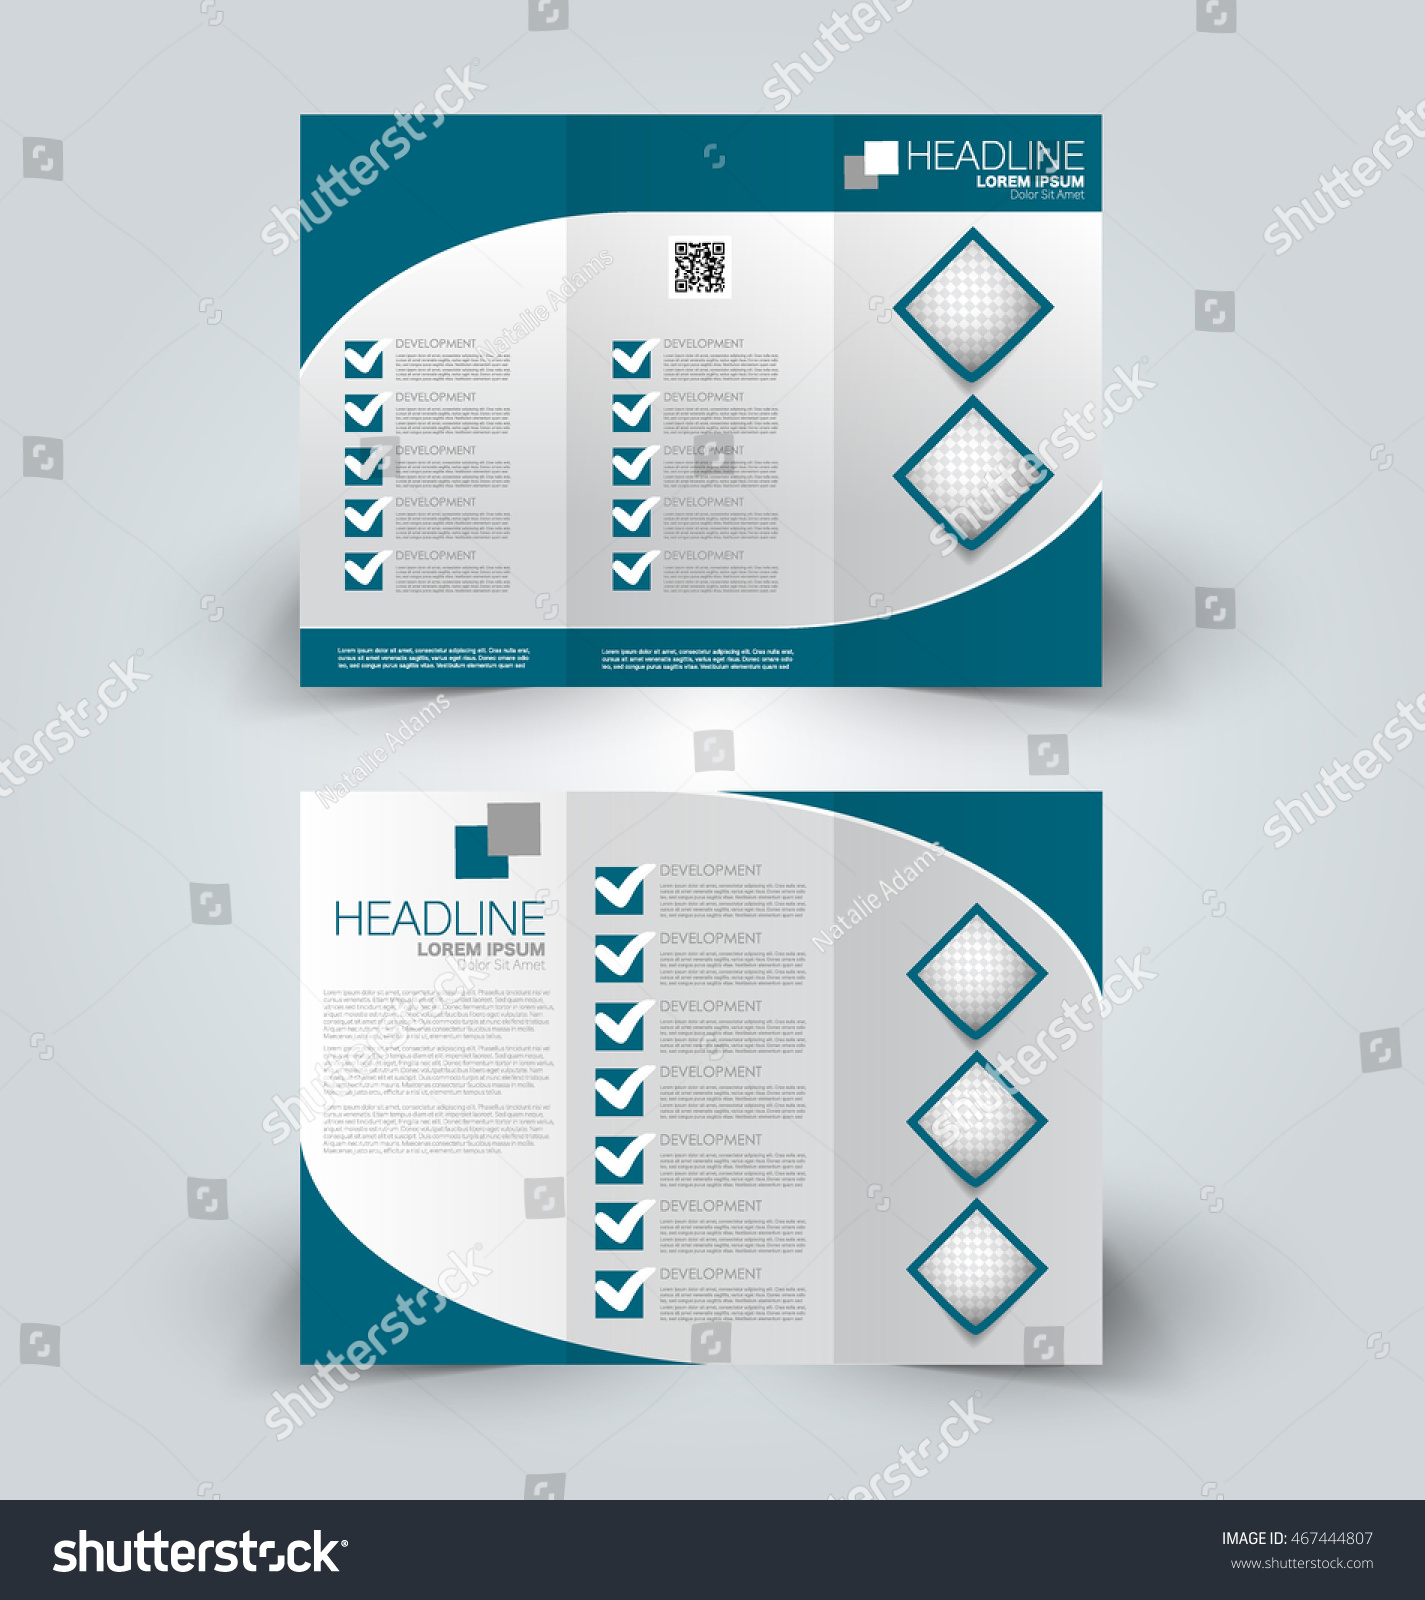 brochure mock up template - brochure mock design template business education stock